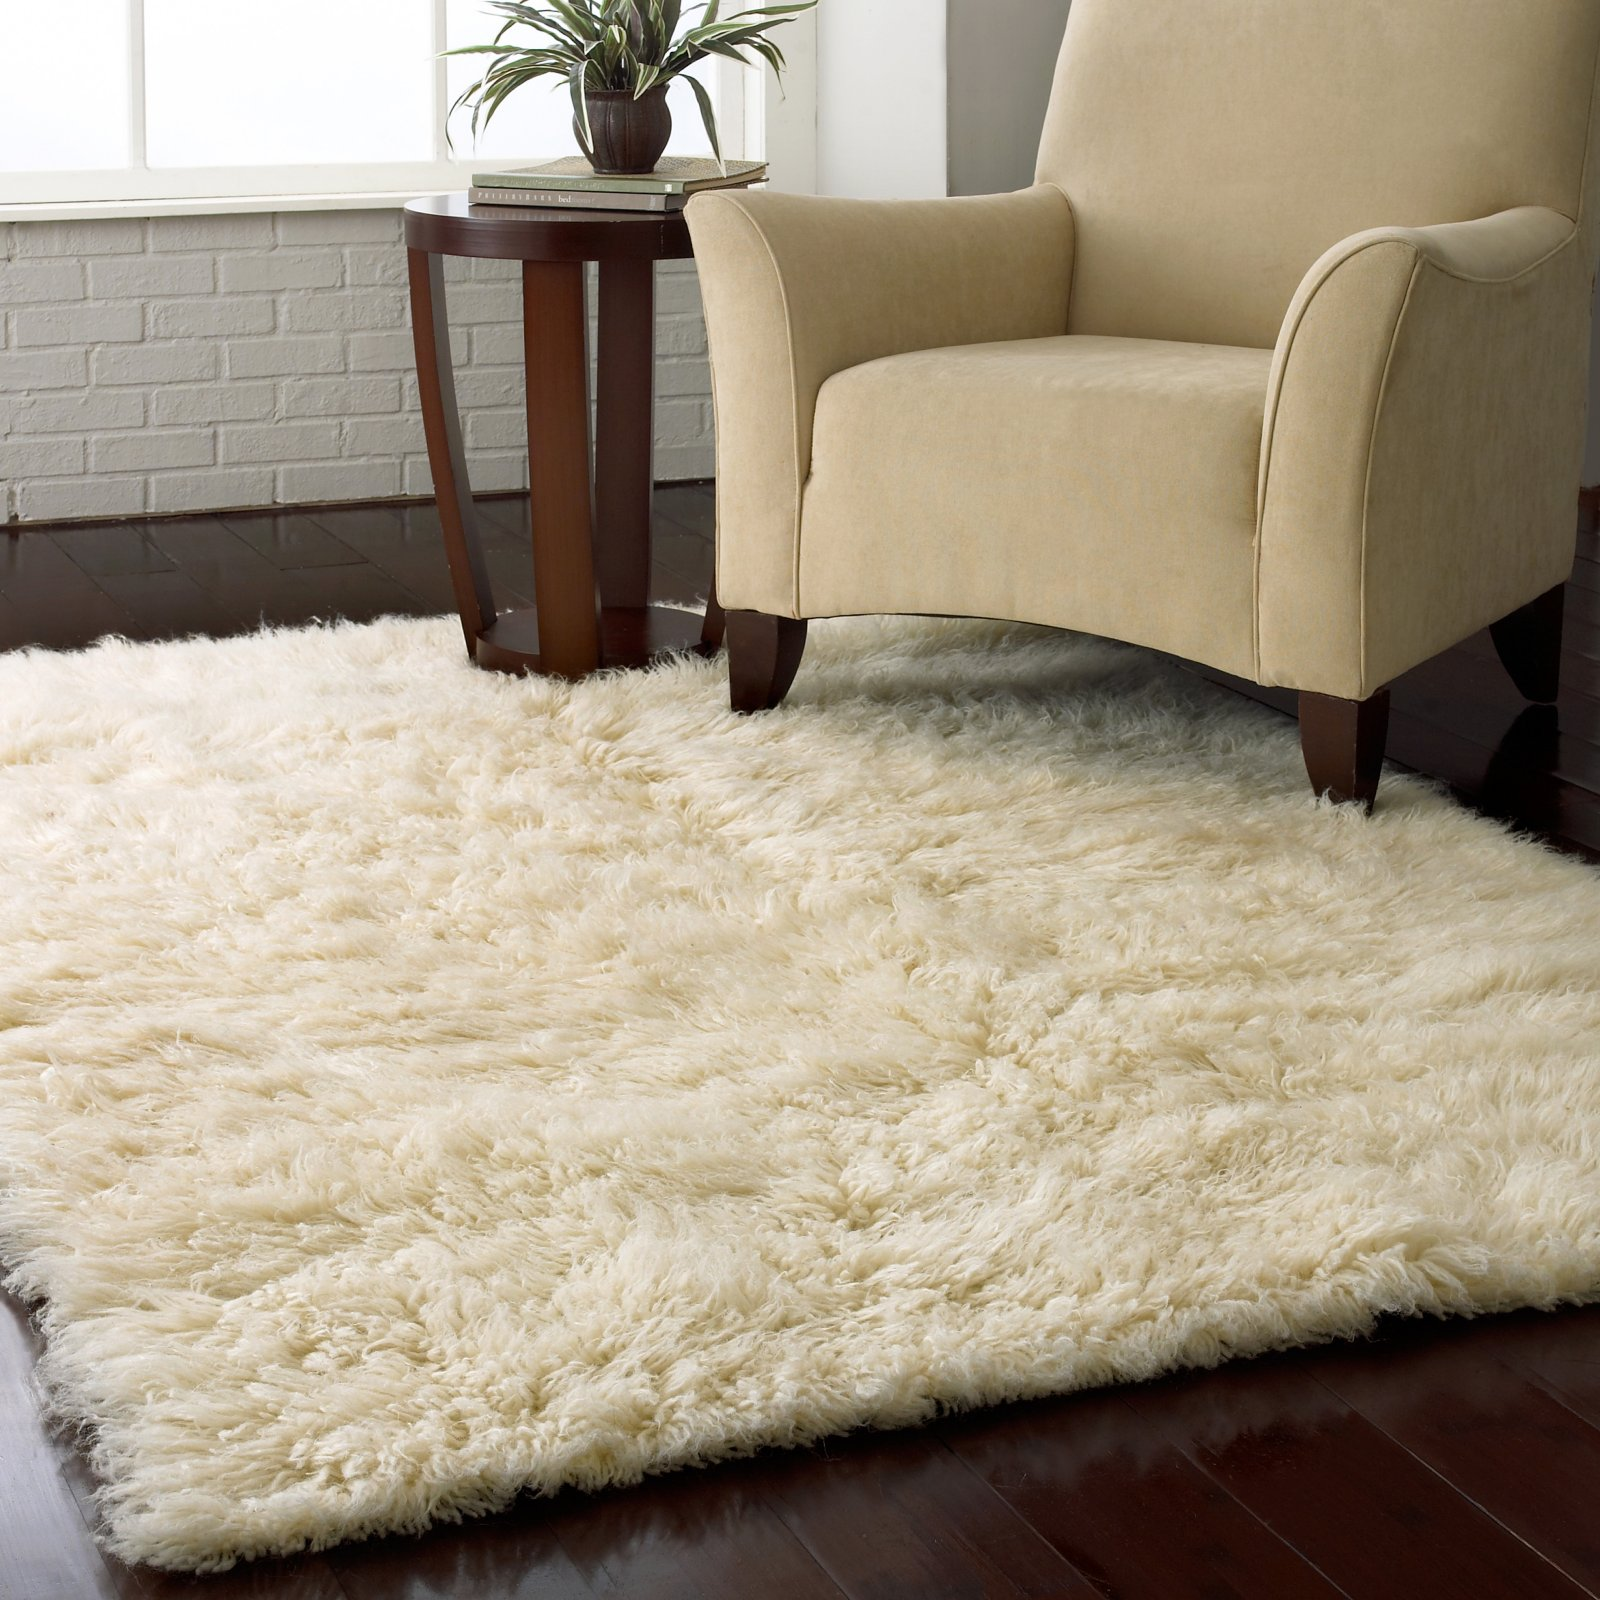 Soft White Shag Rug Ikea In Medium Size An Arm Chair A Wooden Side Table Glossy